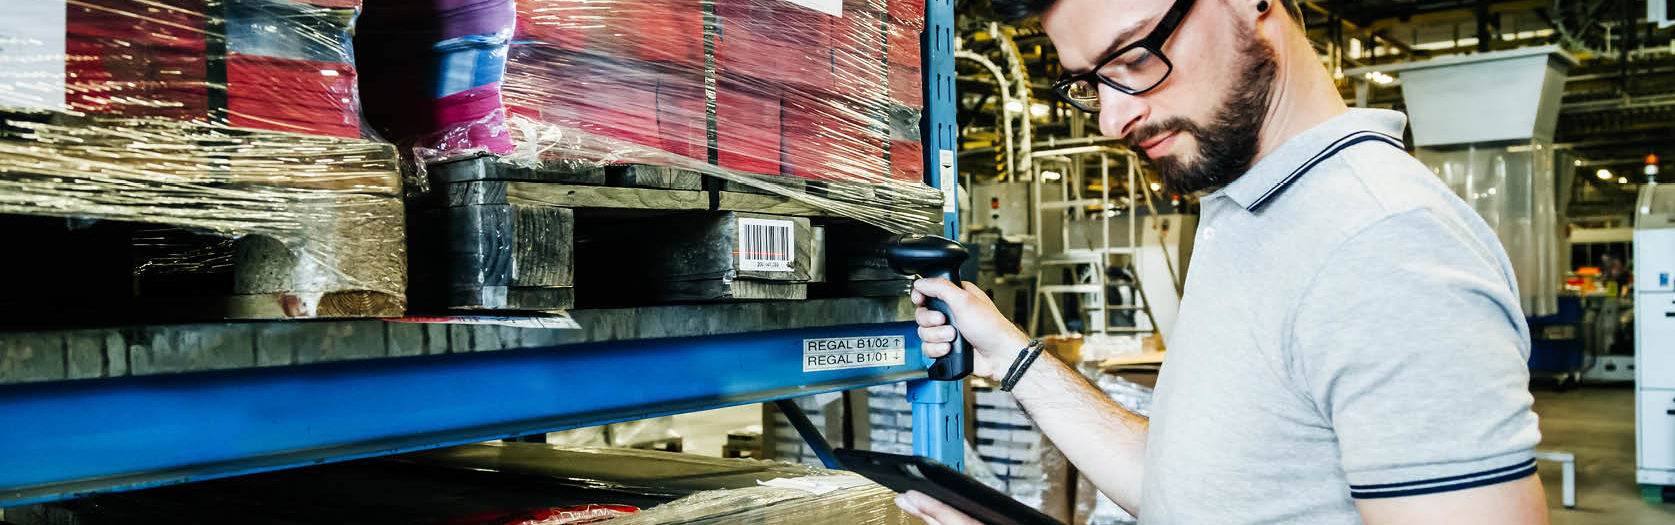 man tracks barcodes and logistics in an erp software warehouse with coloured packages